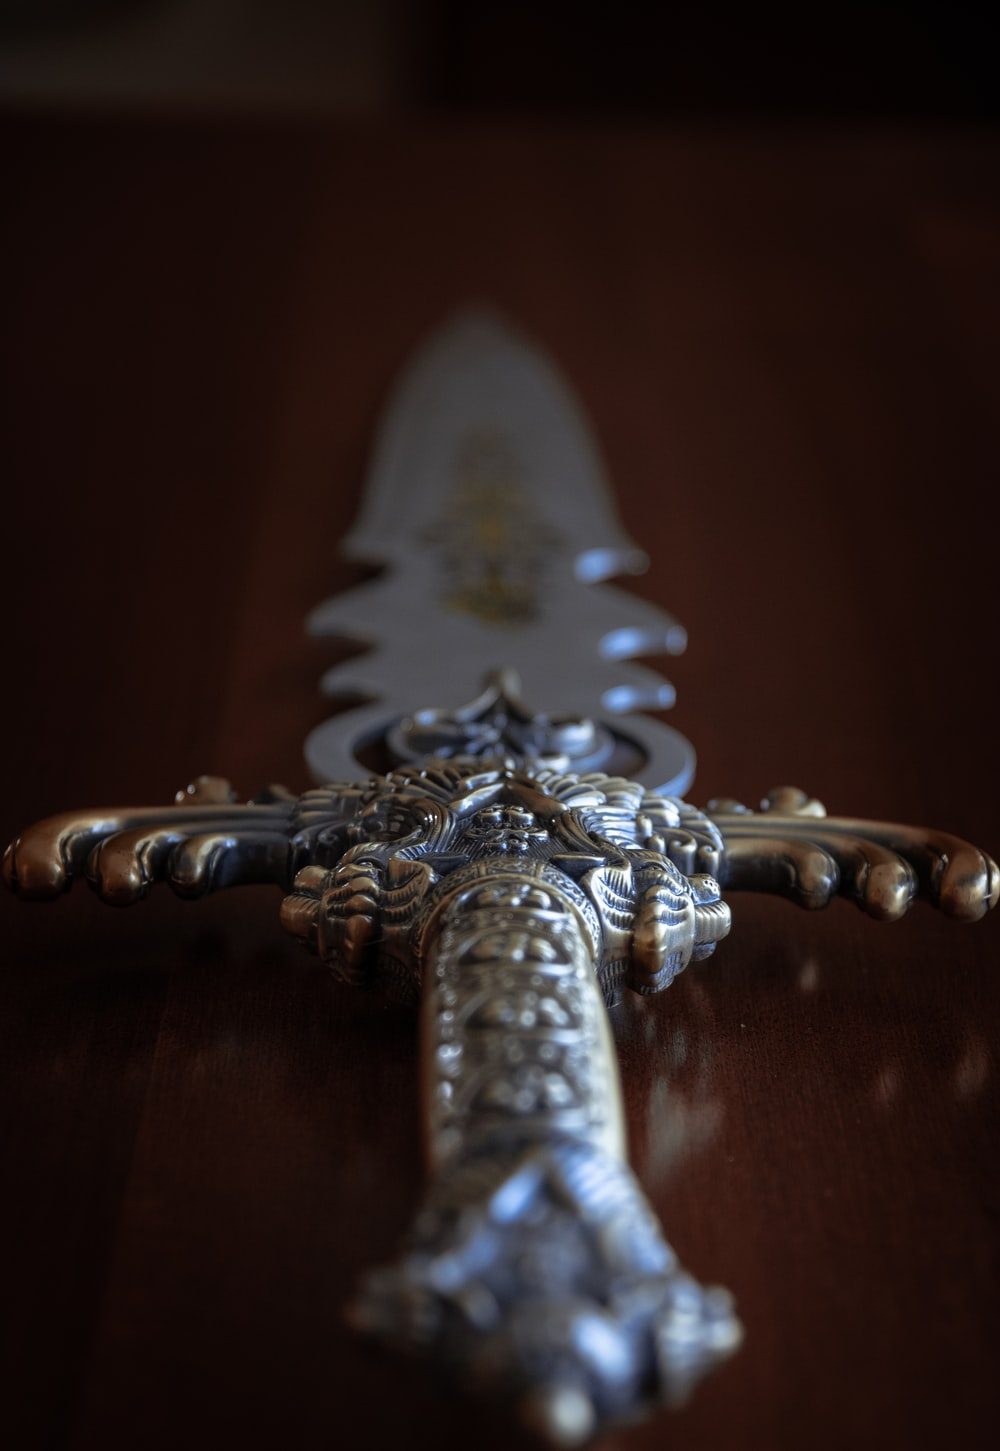 silver sword on brown wooden table